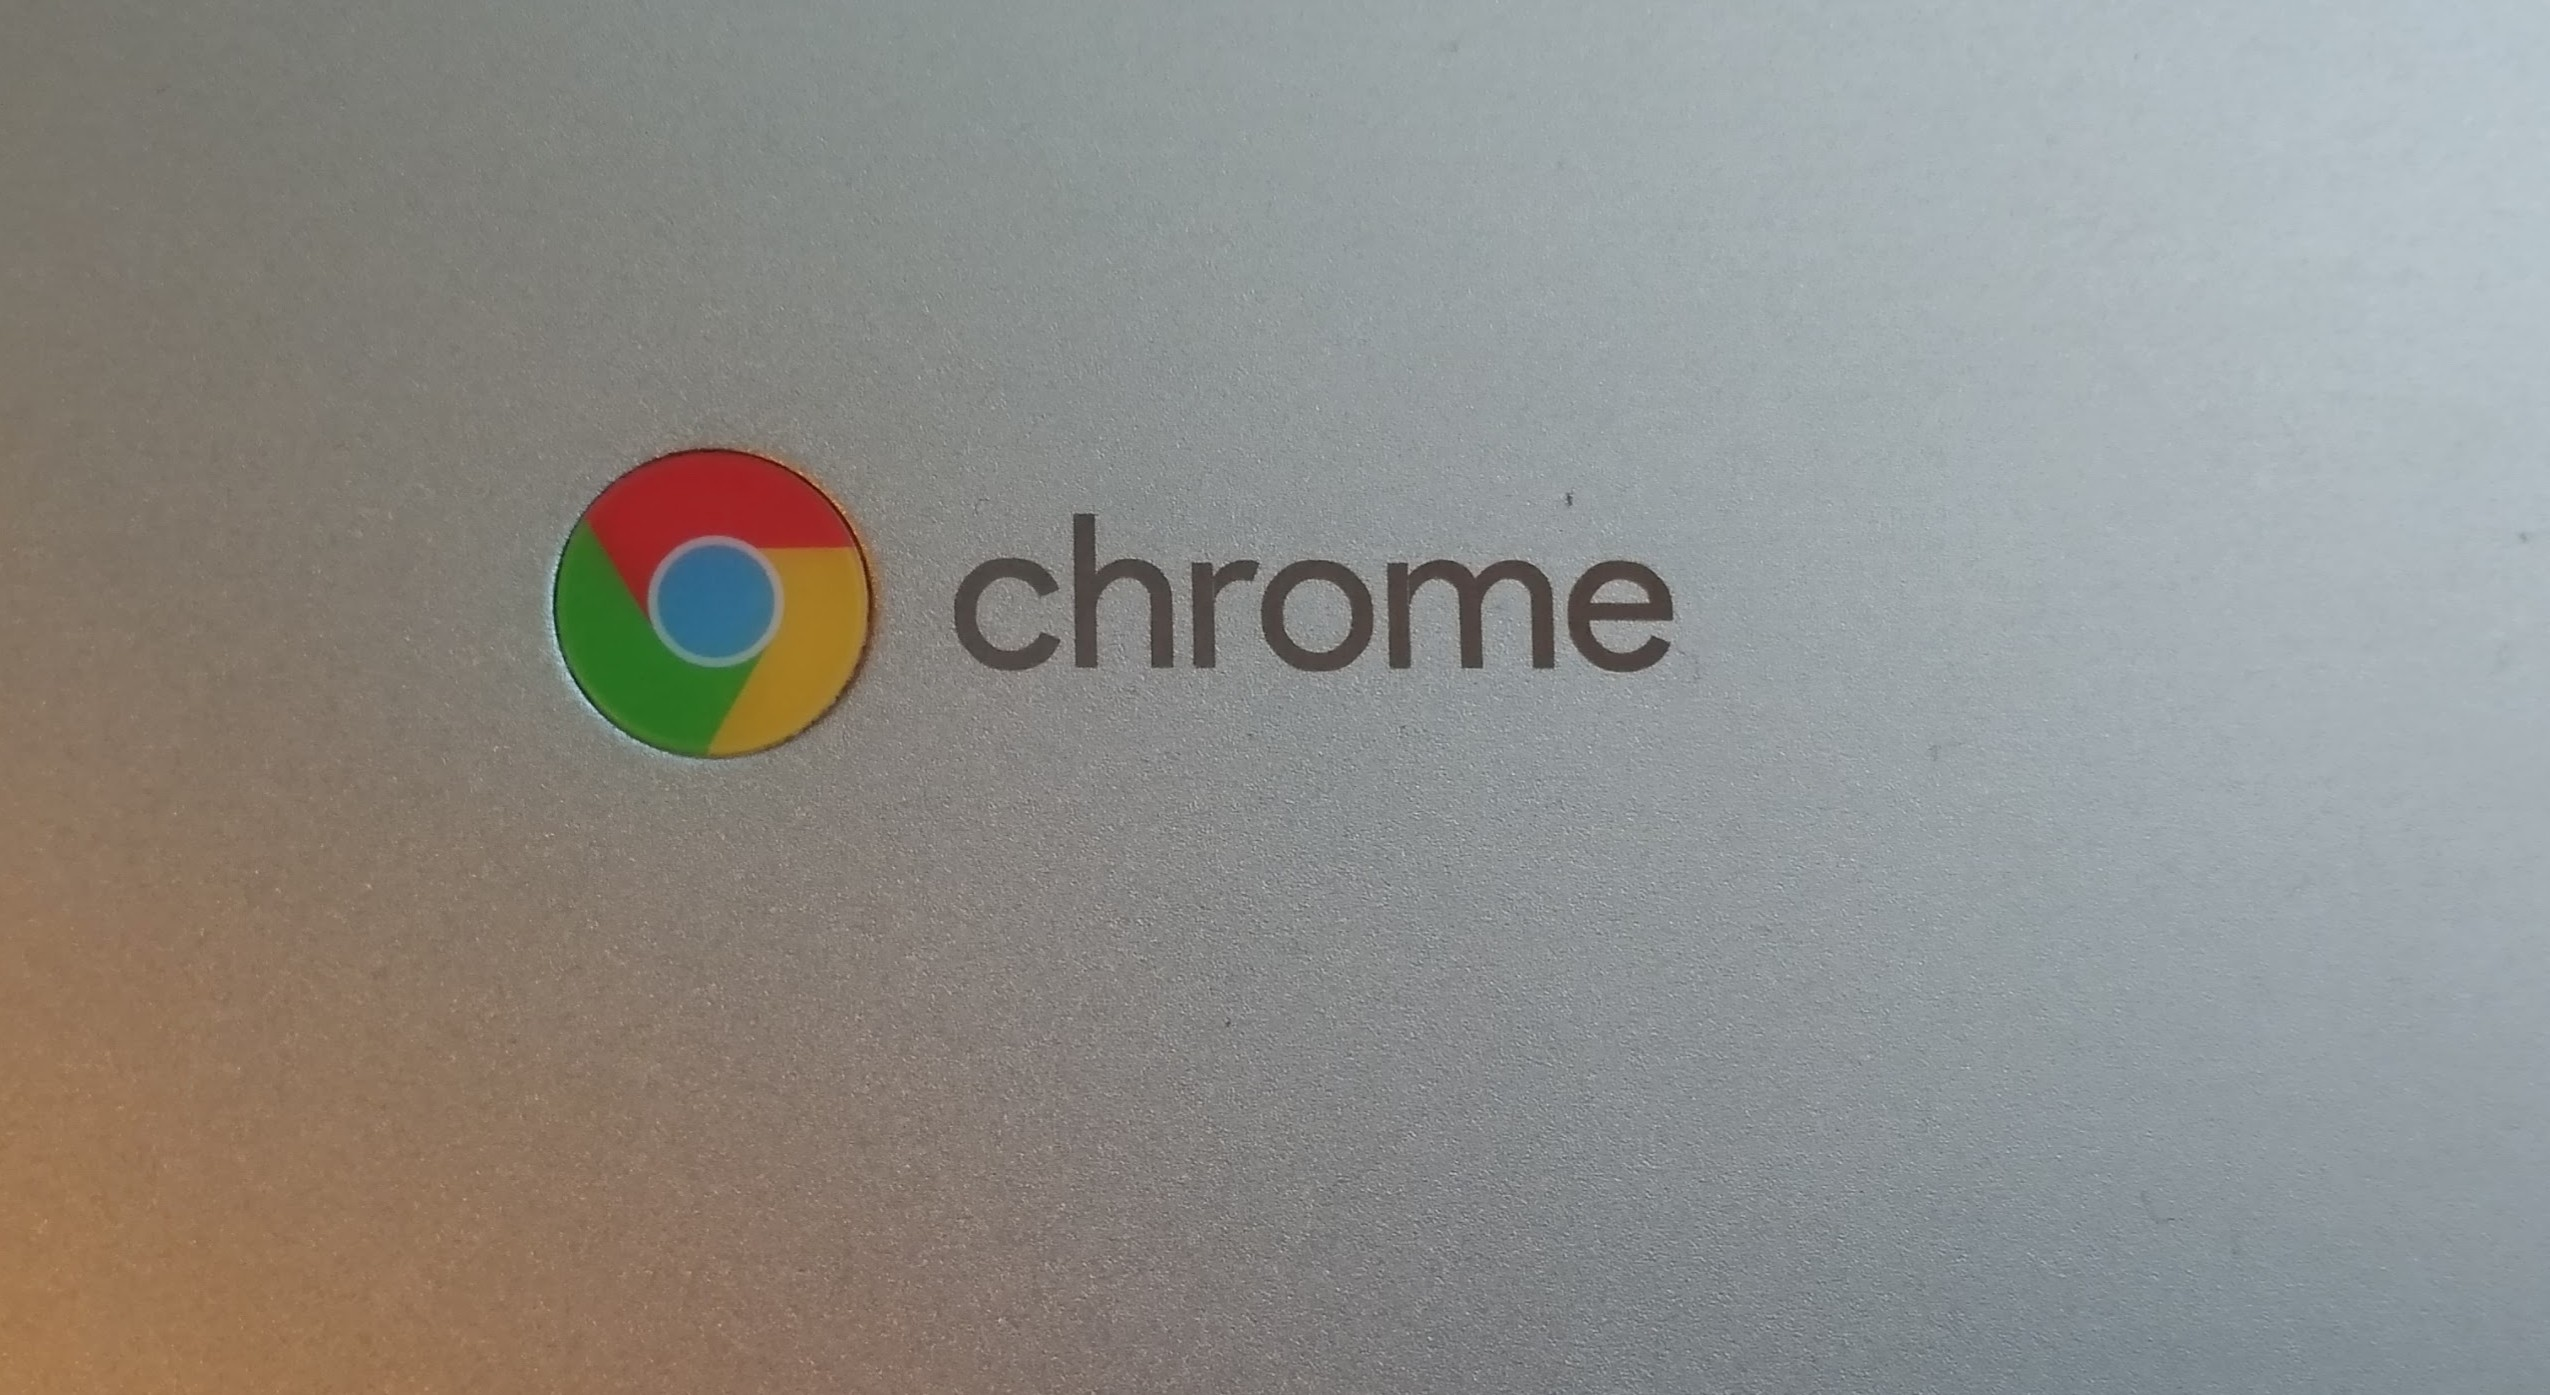 Moving to ChromeOS after Growing Up With Windows - Tom